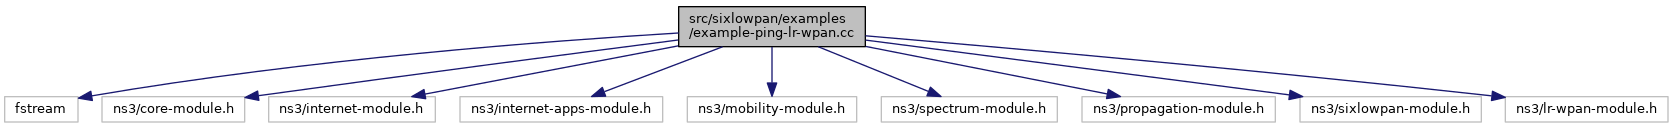 ns-3: src/sixlowpan/examples/example-ping-lr-wpan cc File